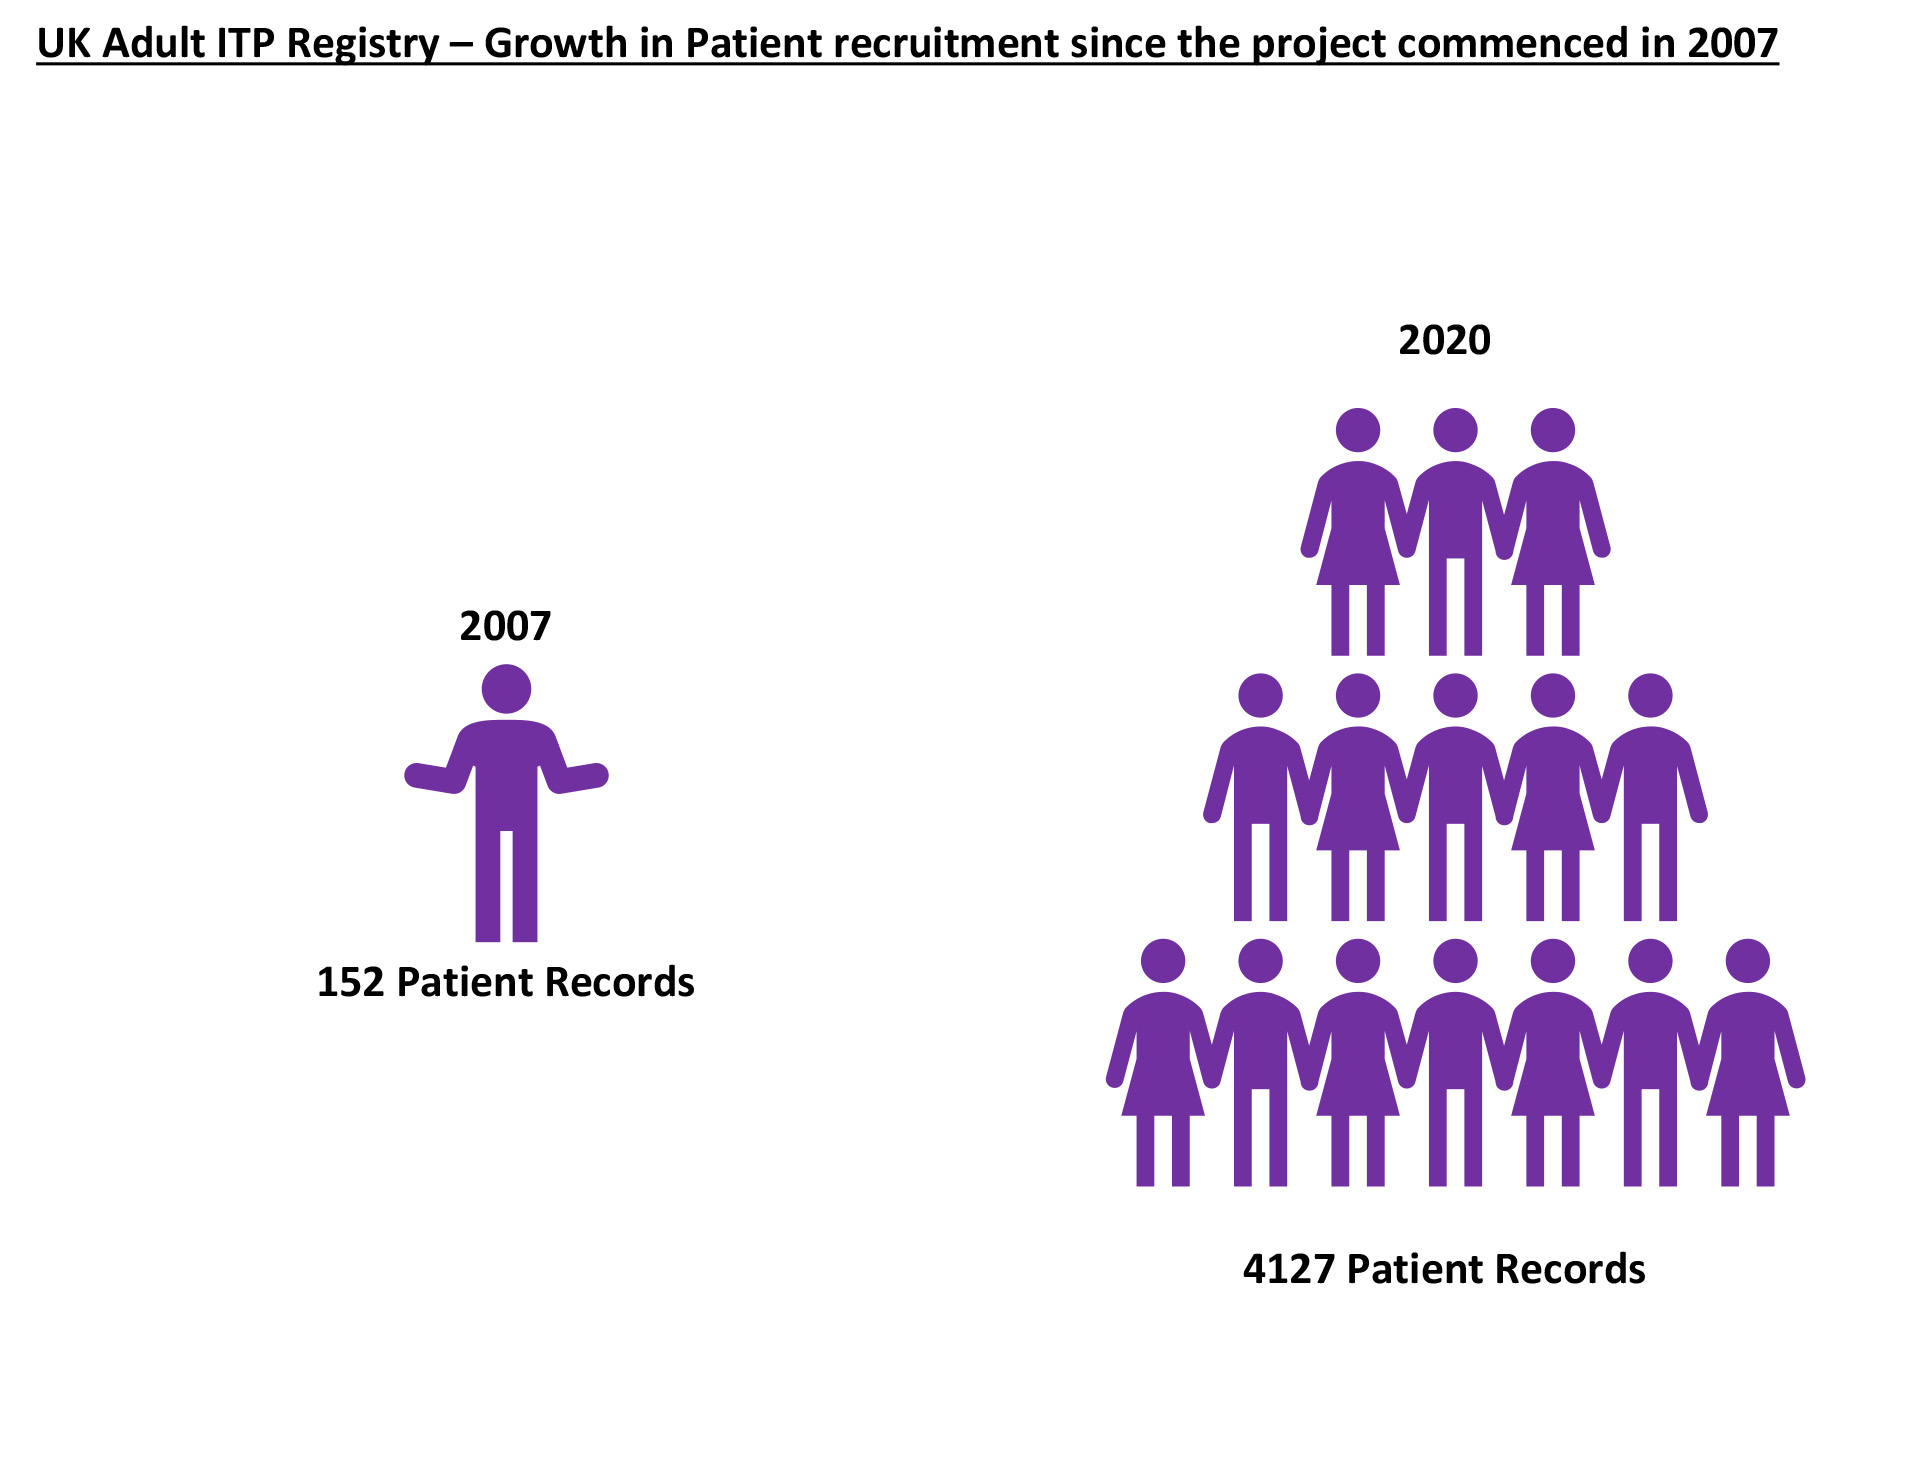 Adult ITP Registry Patient Recruitment Growth